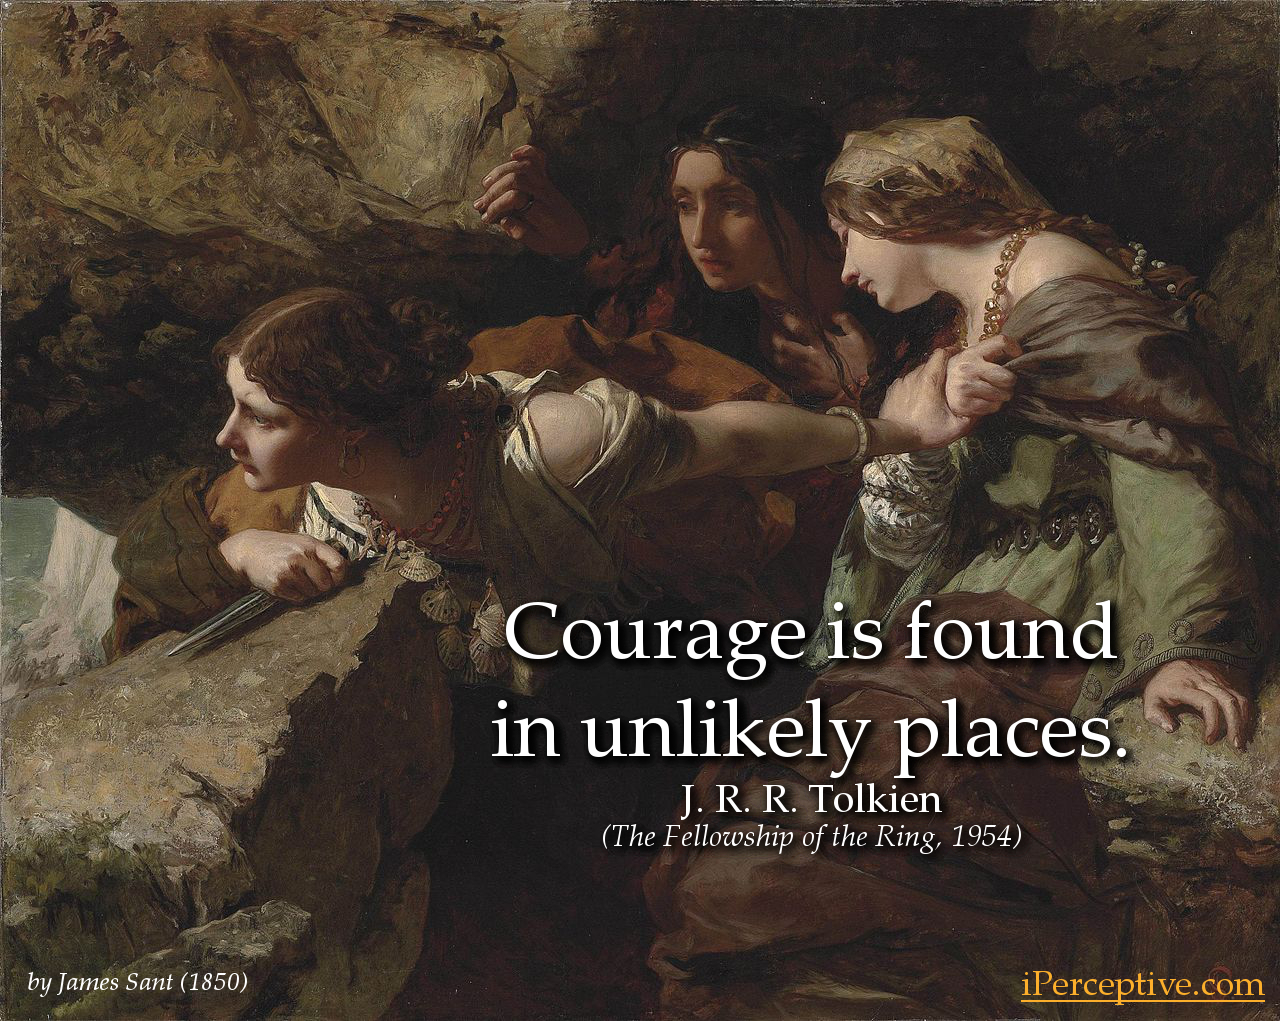 Tolkien Inspirational Quote: Courage is found in unlikely places